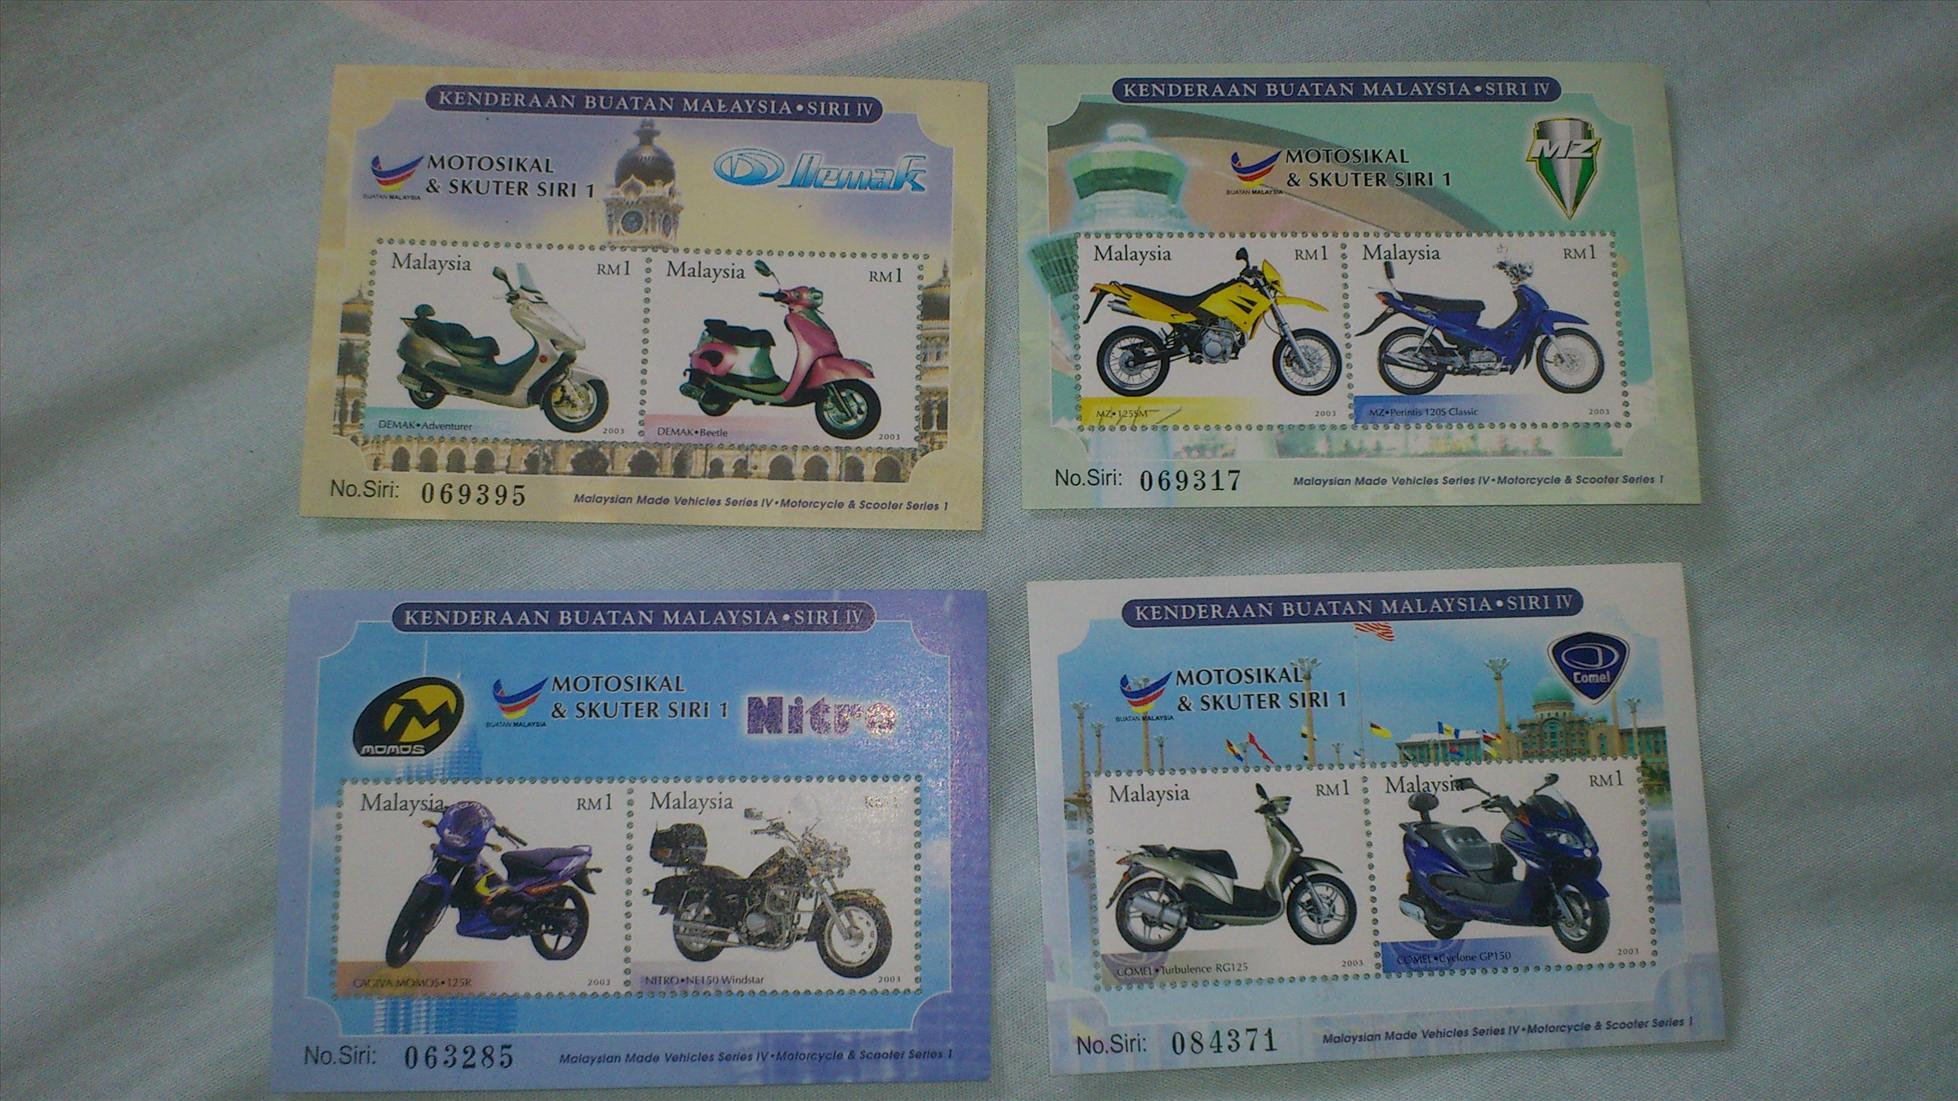 Malaysia Made Vehicles - Motosikal & Skuter, Motorcycle & Scooter Set